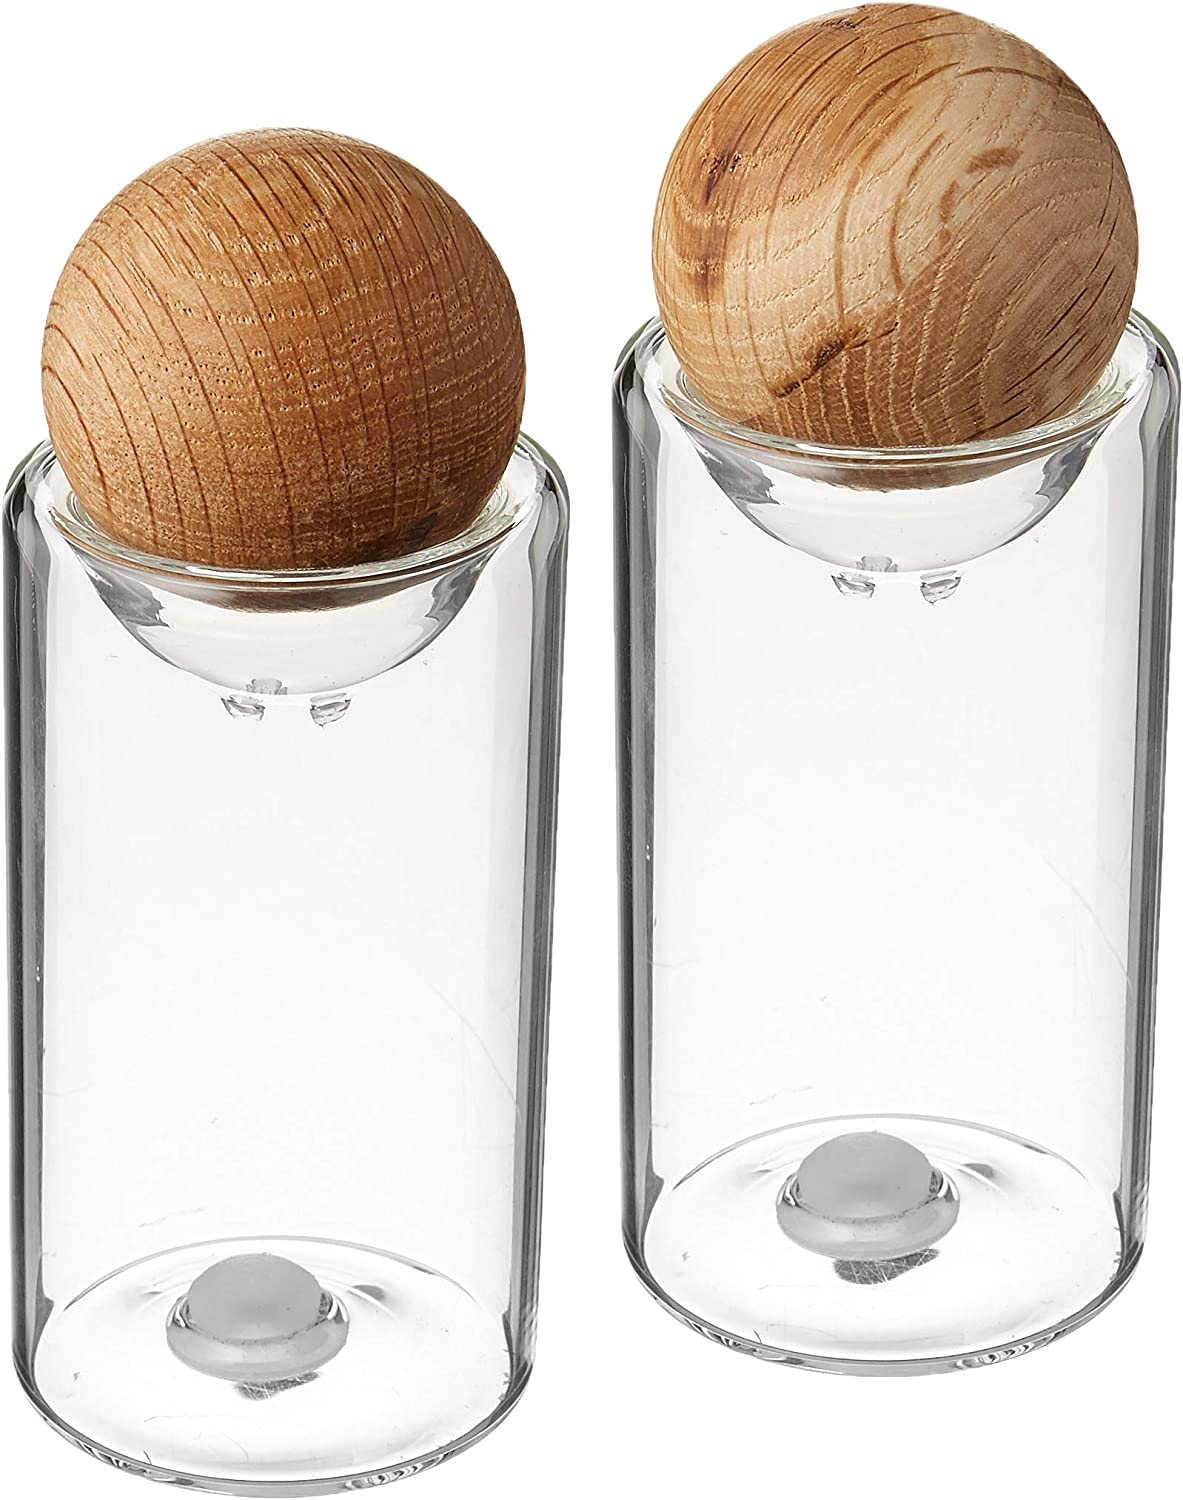 Sagaform Nature Collection Salt and Pepper Glass Salt & Pepper Shakers with Oak Stopper 4 1/2-Inch, Set of 2